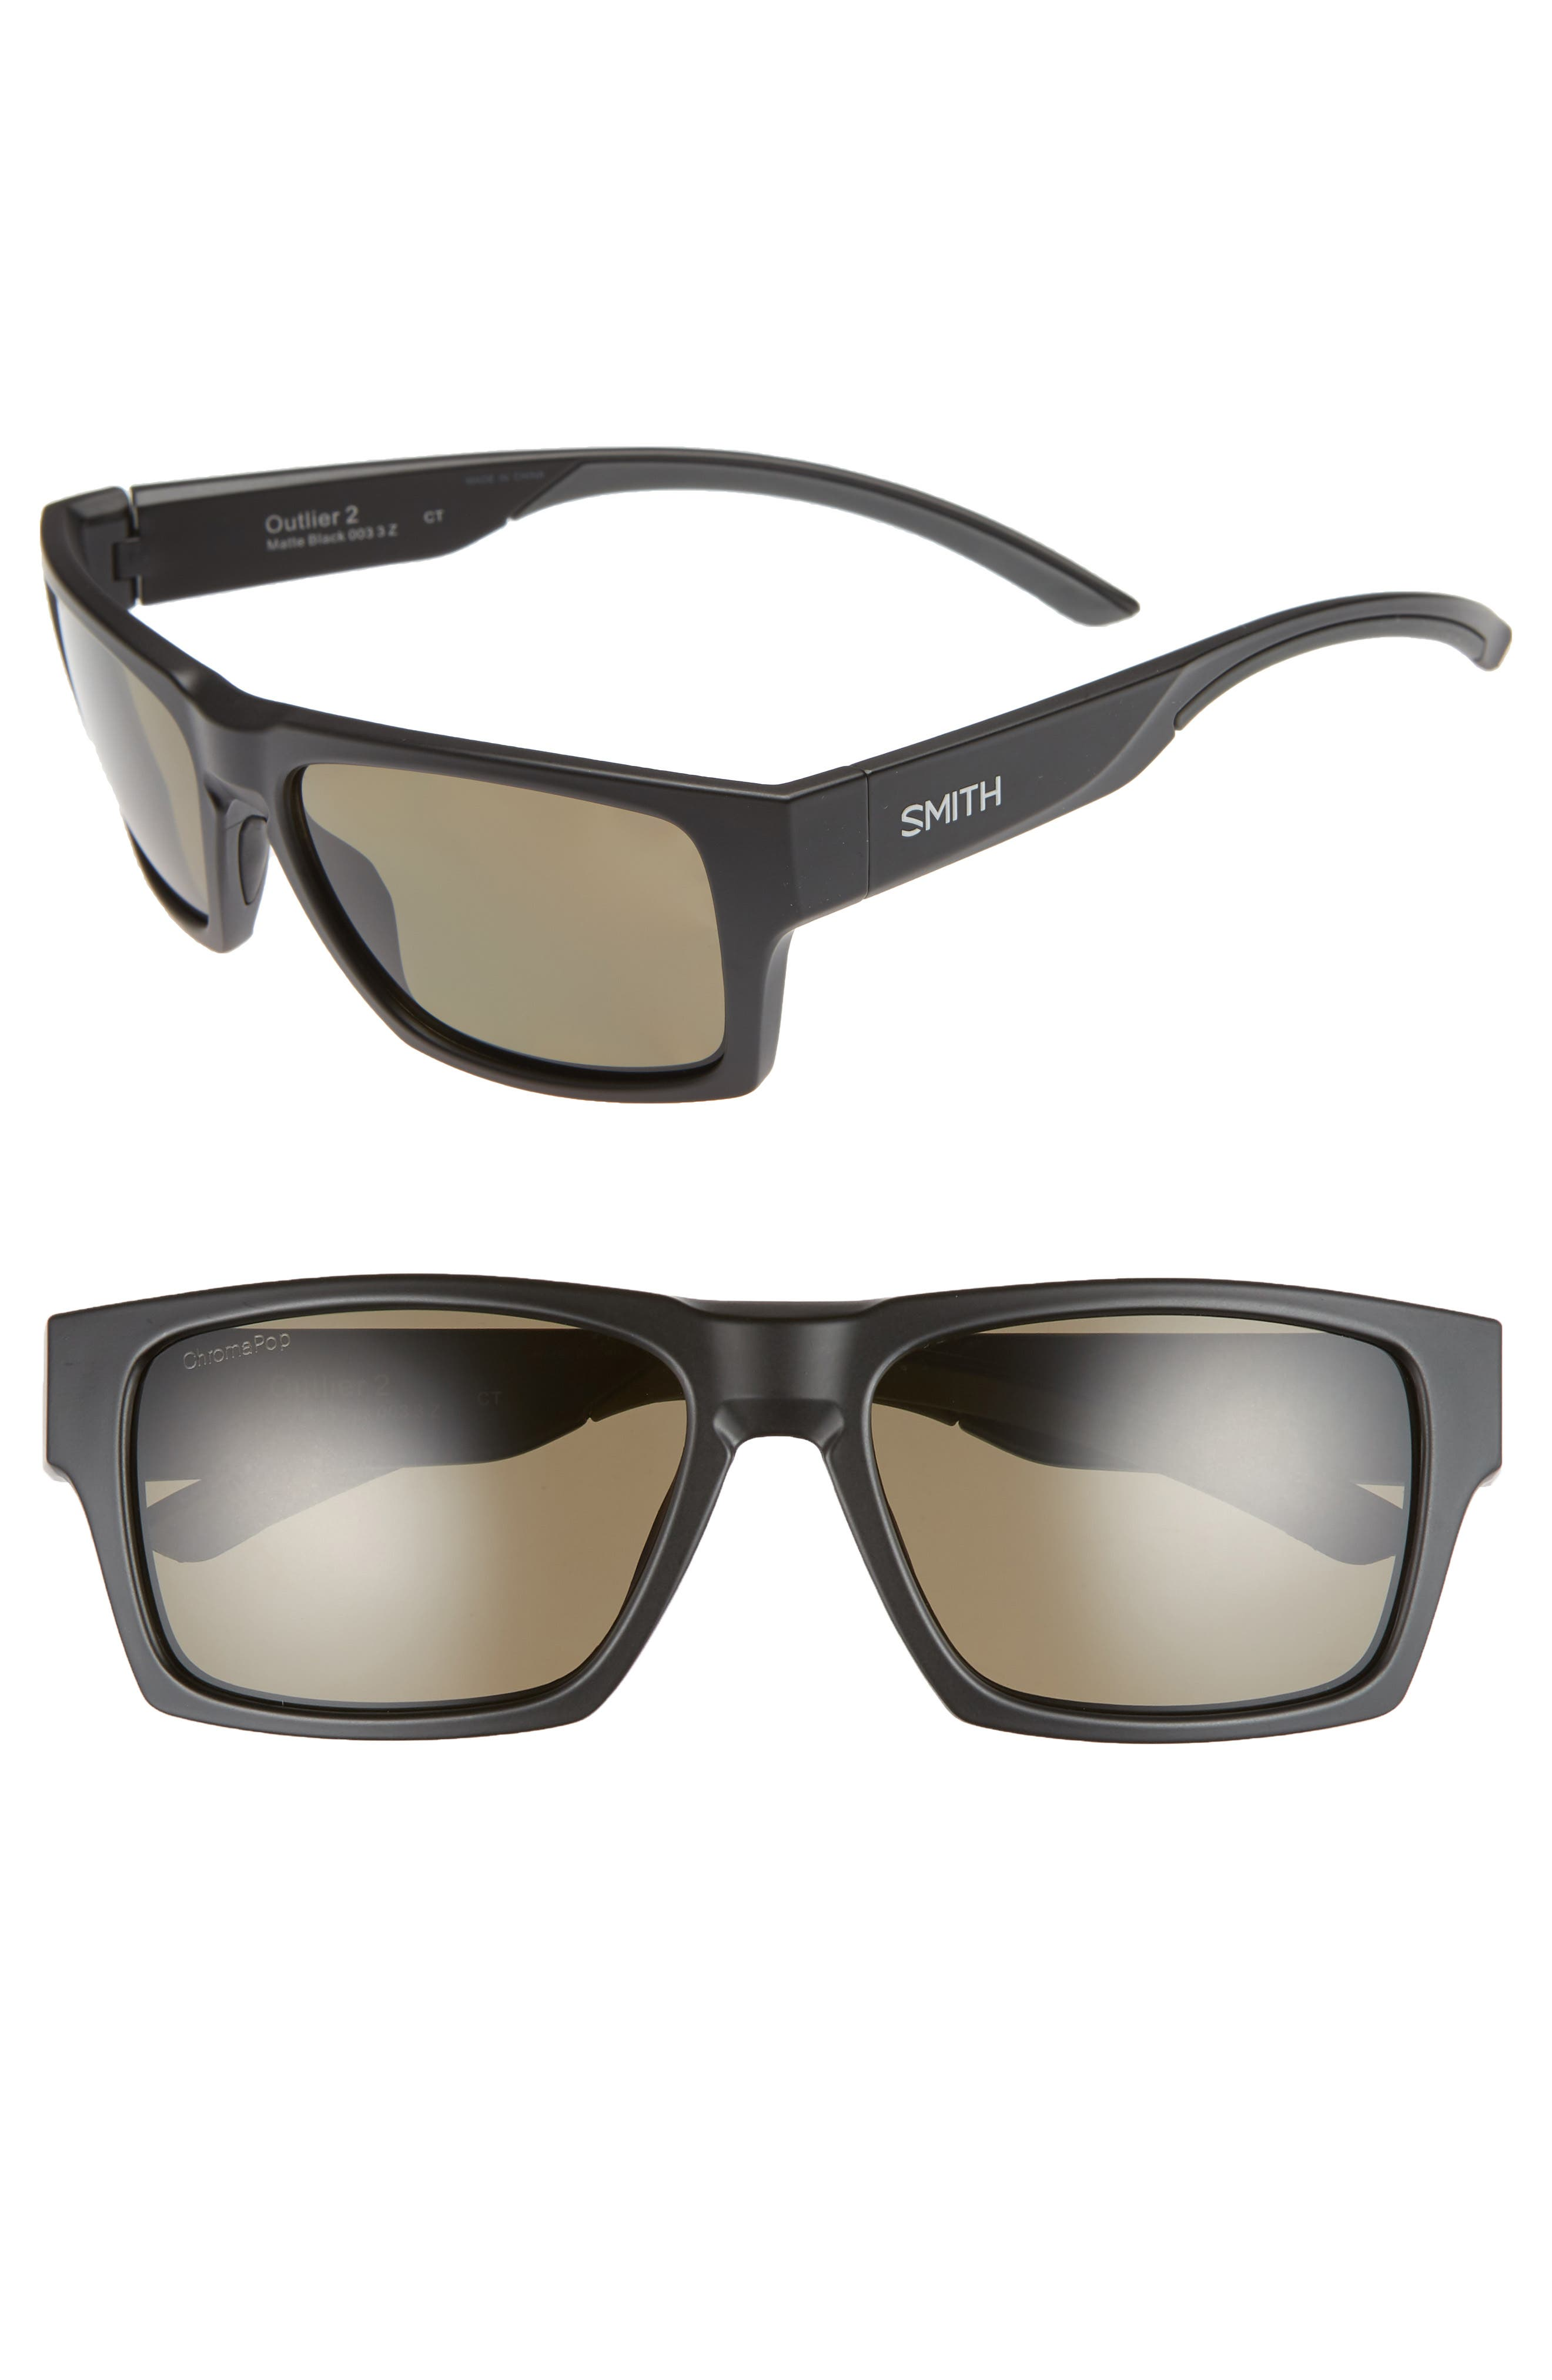 SMITH OUTLIER 2 57MM CHROMAPOP(TM) SQUARE SUNGLASSES - MATTE BLACK